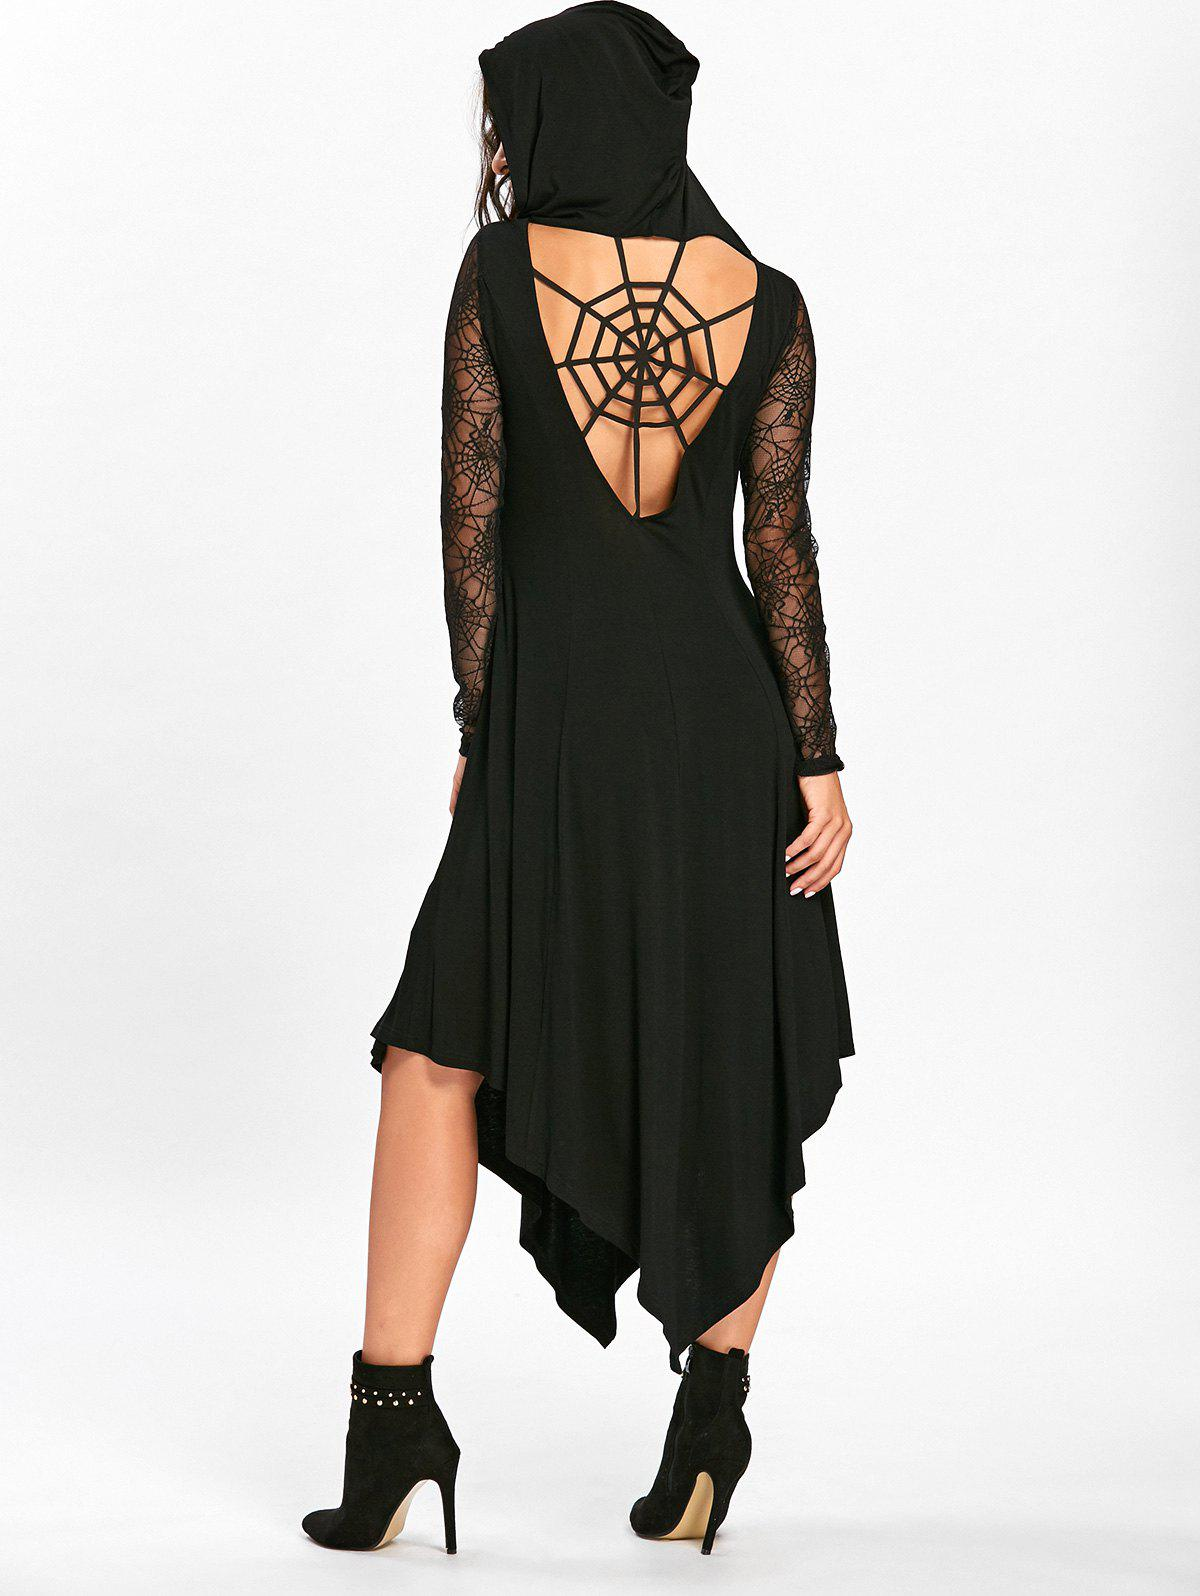 Halloween Spider Web Handkerchief Flowy DressWOMEN<br><br>Size: 2XL; Color: BLACK; Style: Brief; Material: Cotton,Spandex; Silhouette: Asymmetrical; Dresses Length: Mid-Calf; Neckline: Hooded; Sleeve Length: Long Sleeves; Pattern Type: Patchwork,Solid; With Belt: No; Season: Fall,Spring; Weight: 0.4700kg; Package Contents: 1 x Dress;